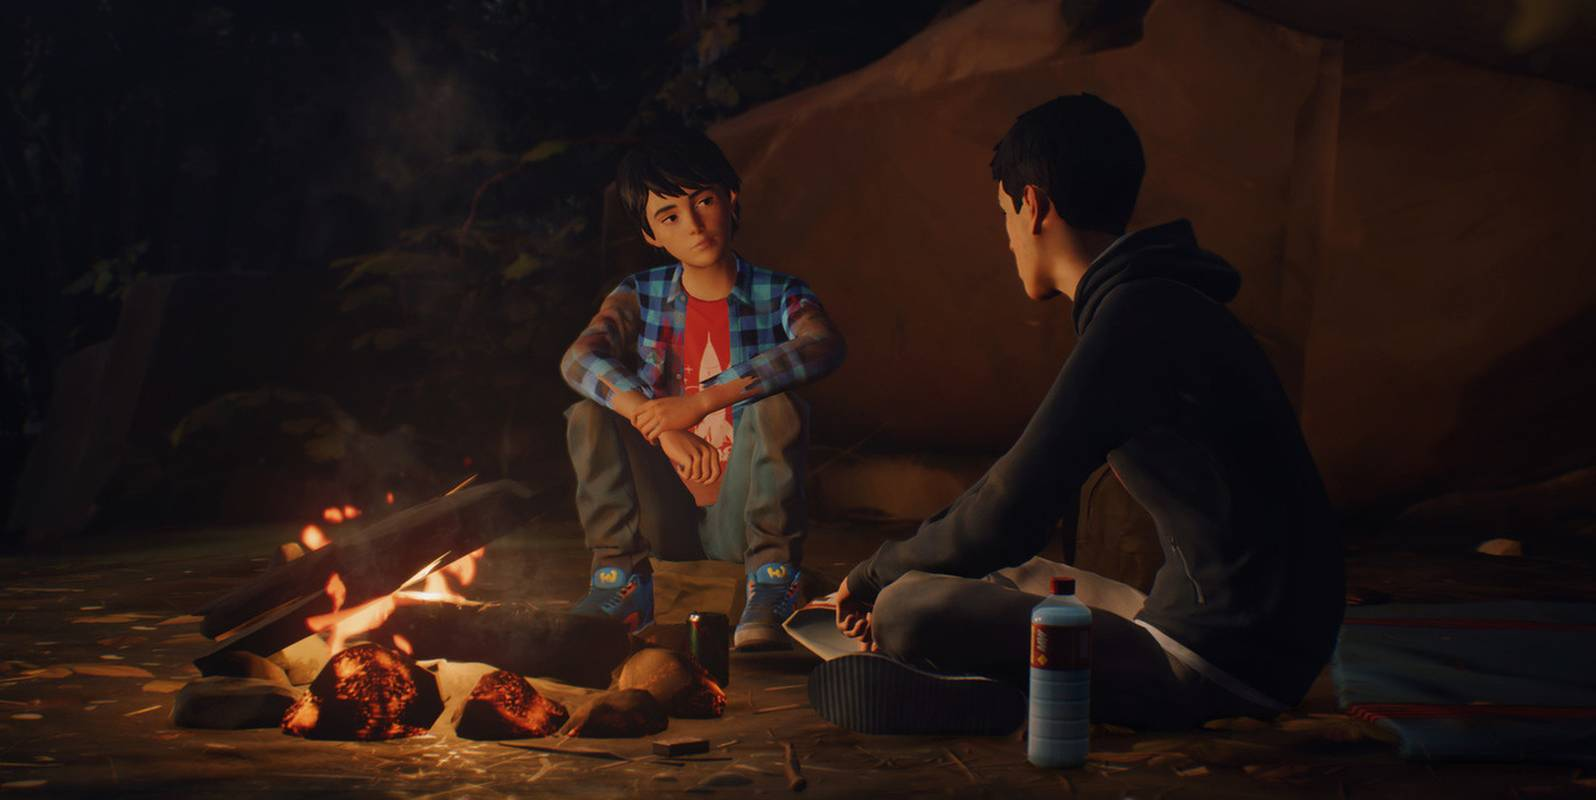 Life Is Strange 2 Developer Explains The Choice And Consequence System Prior To Last Chapter Launch